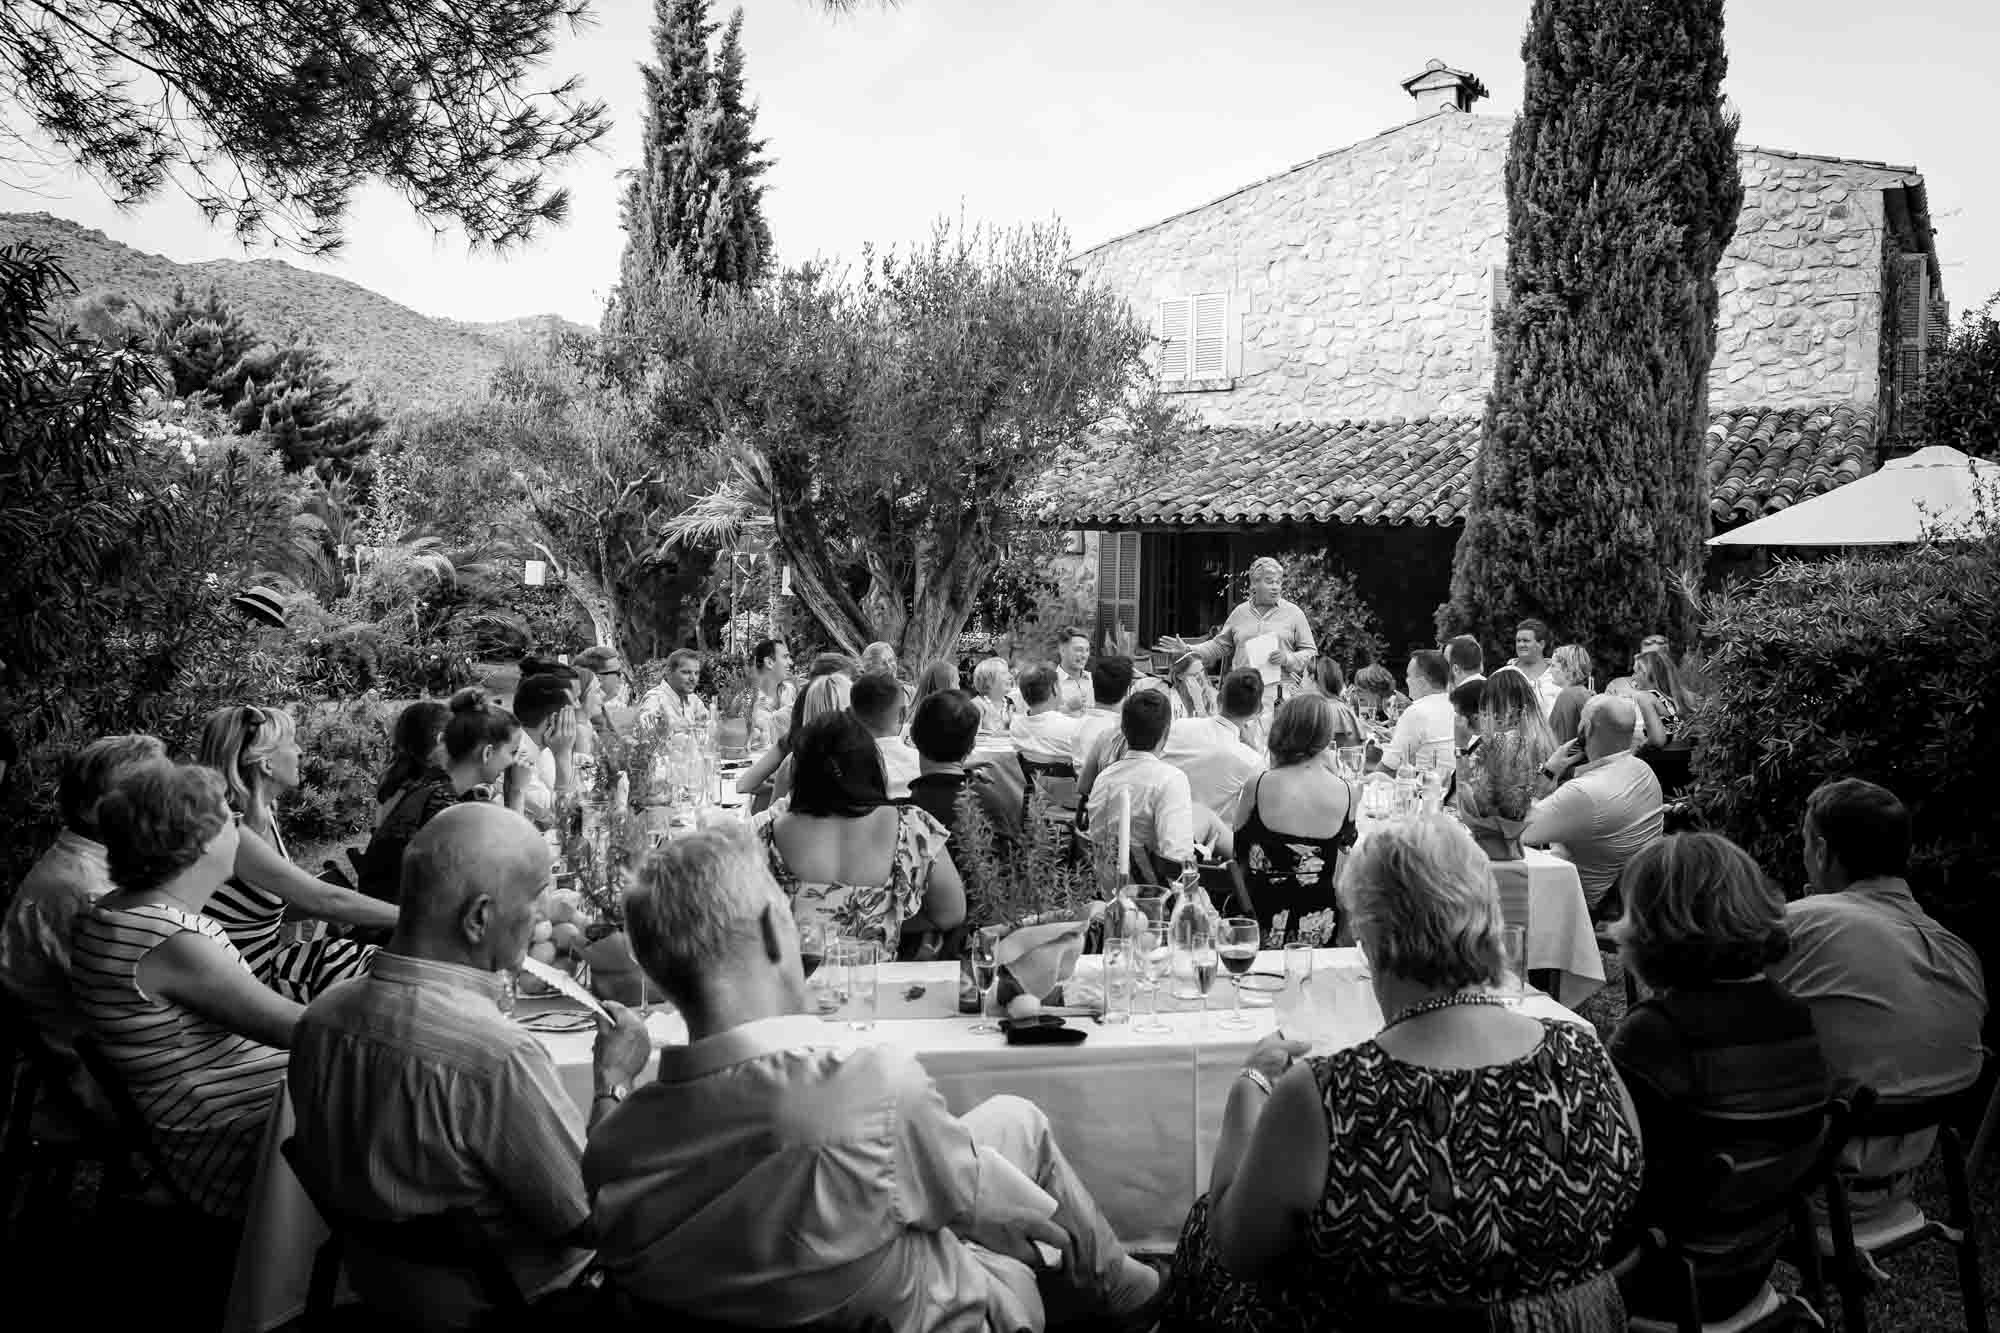 The guests all listen to the father-of-the-bride speech at a Mallorca villa wedding